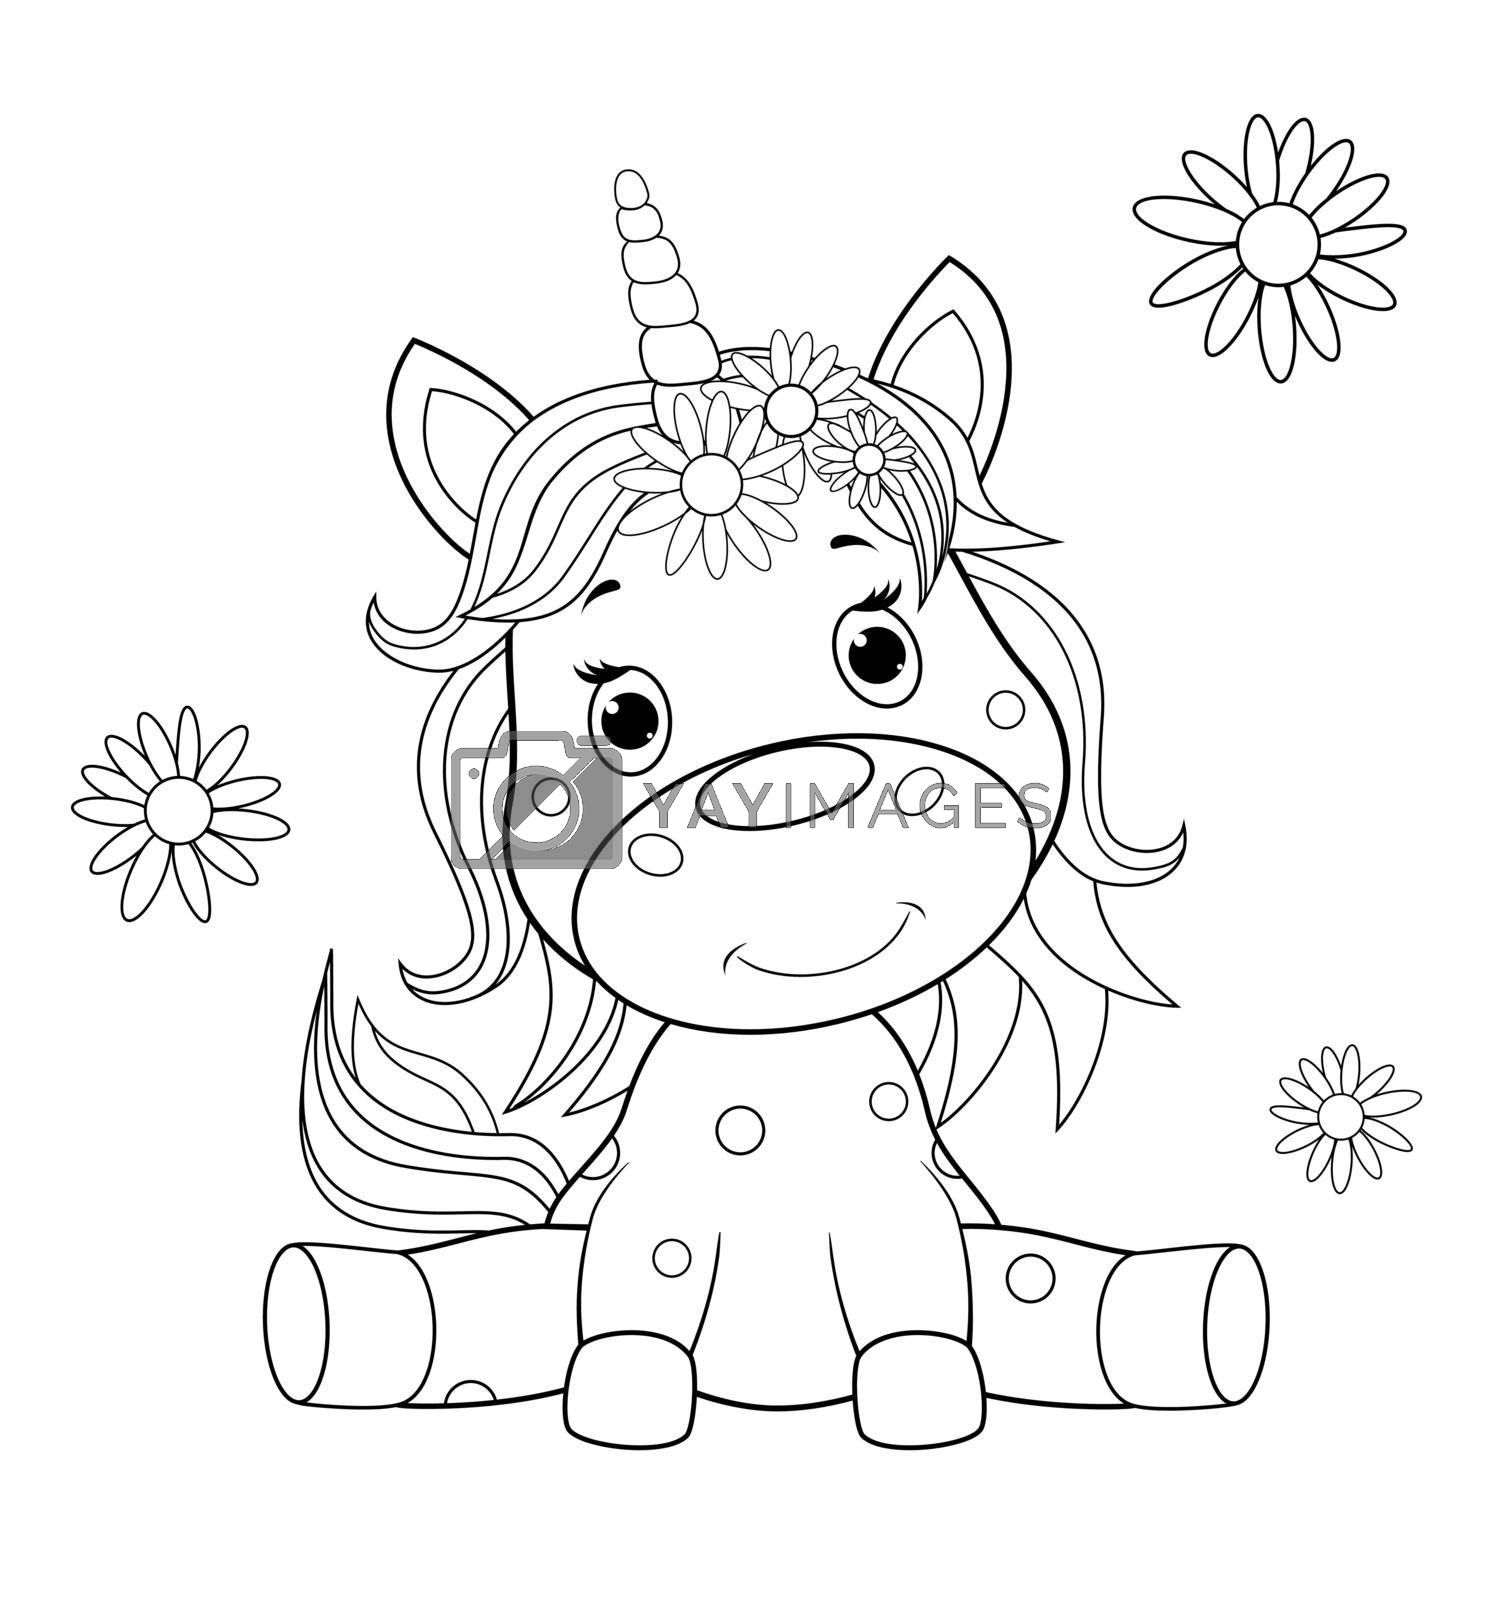 Baby unicorn sketch for coloring by liolle